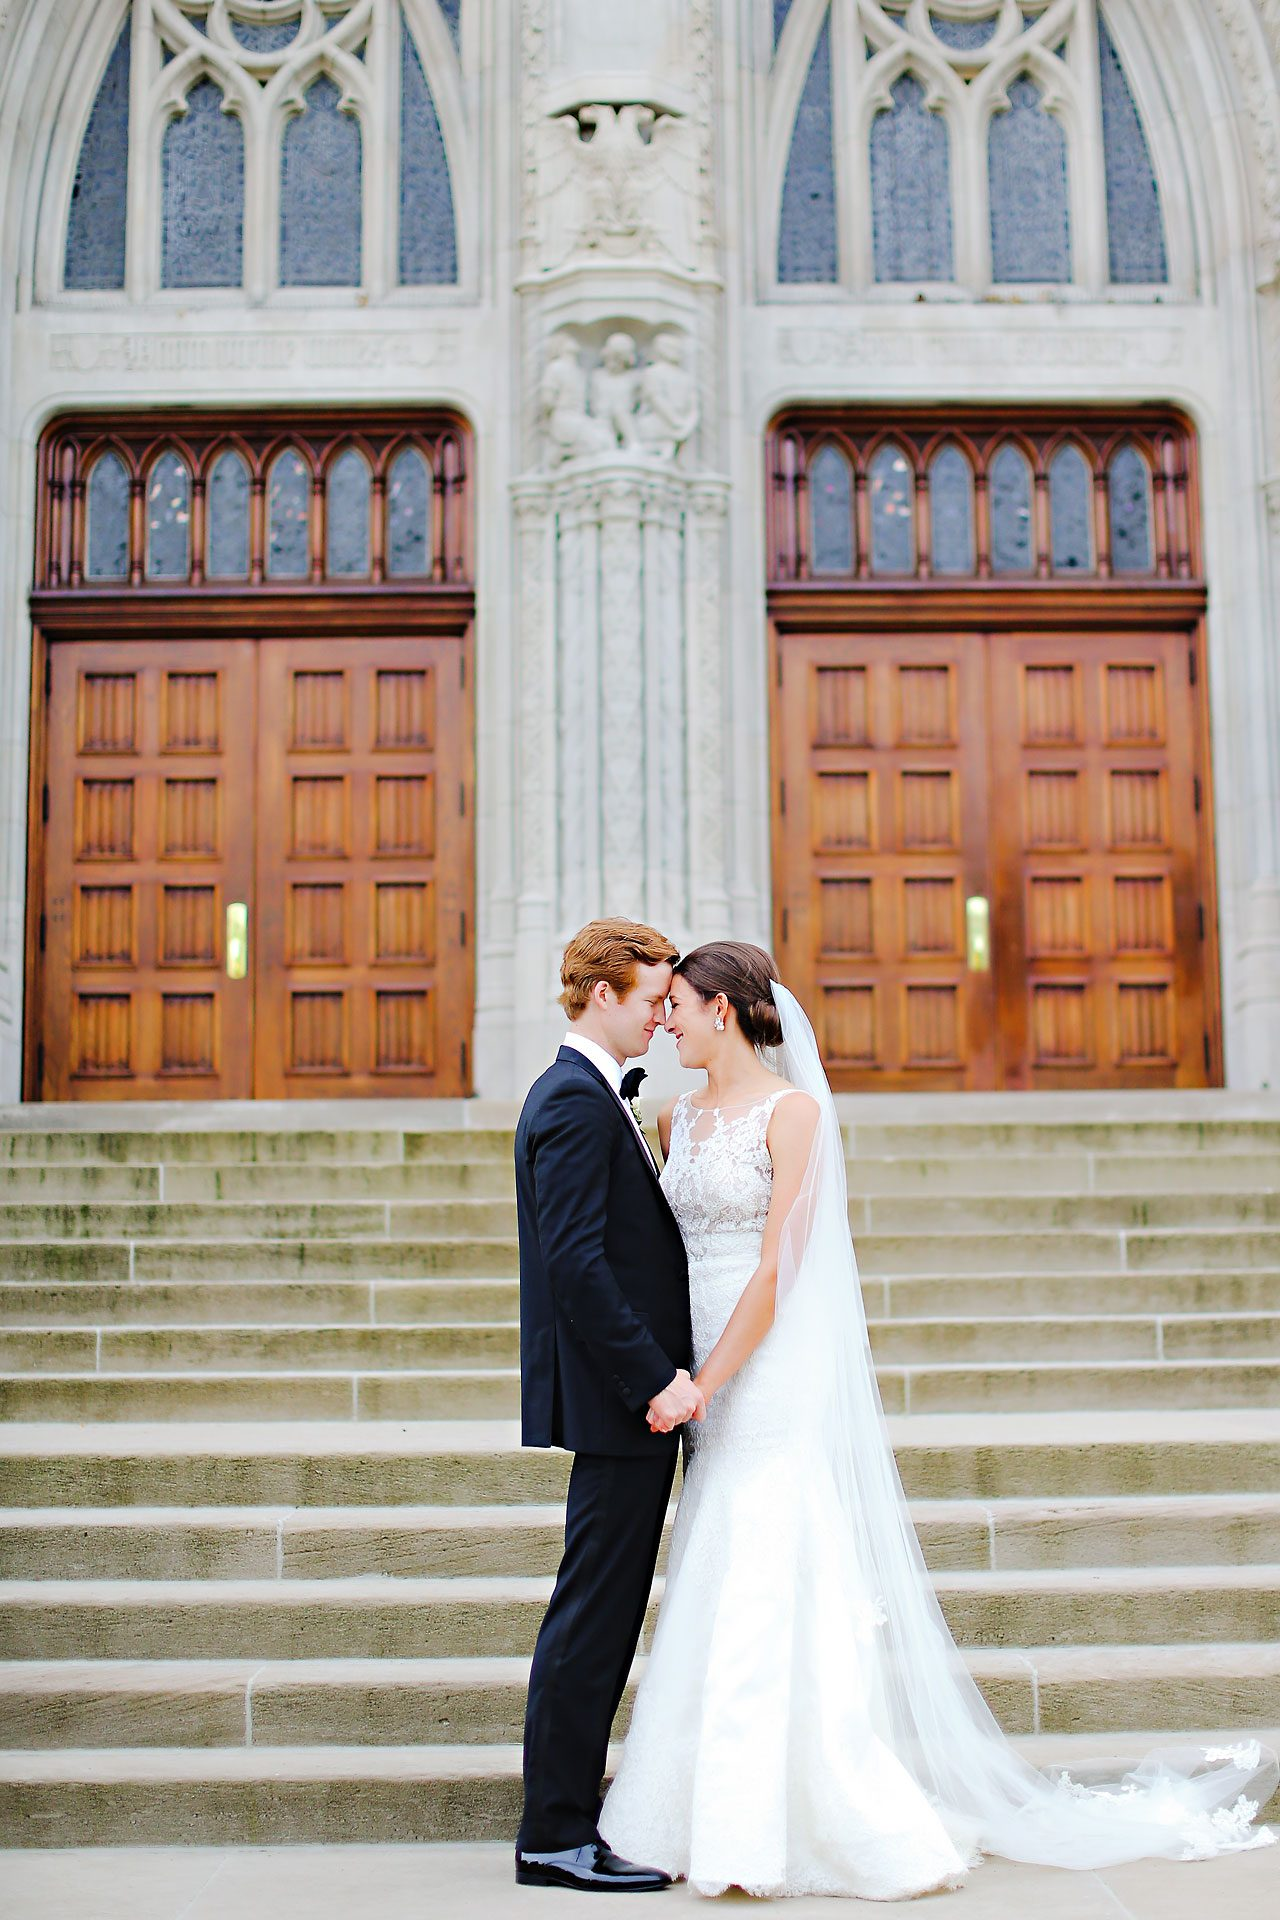 223 katherine austin scottish rite indianapolis wedding